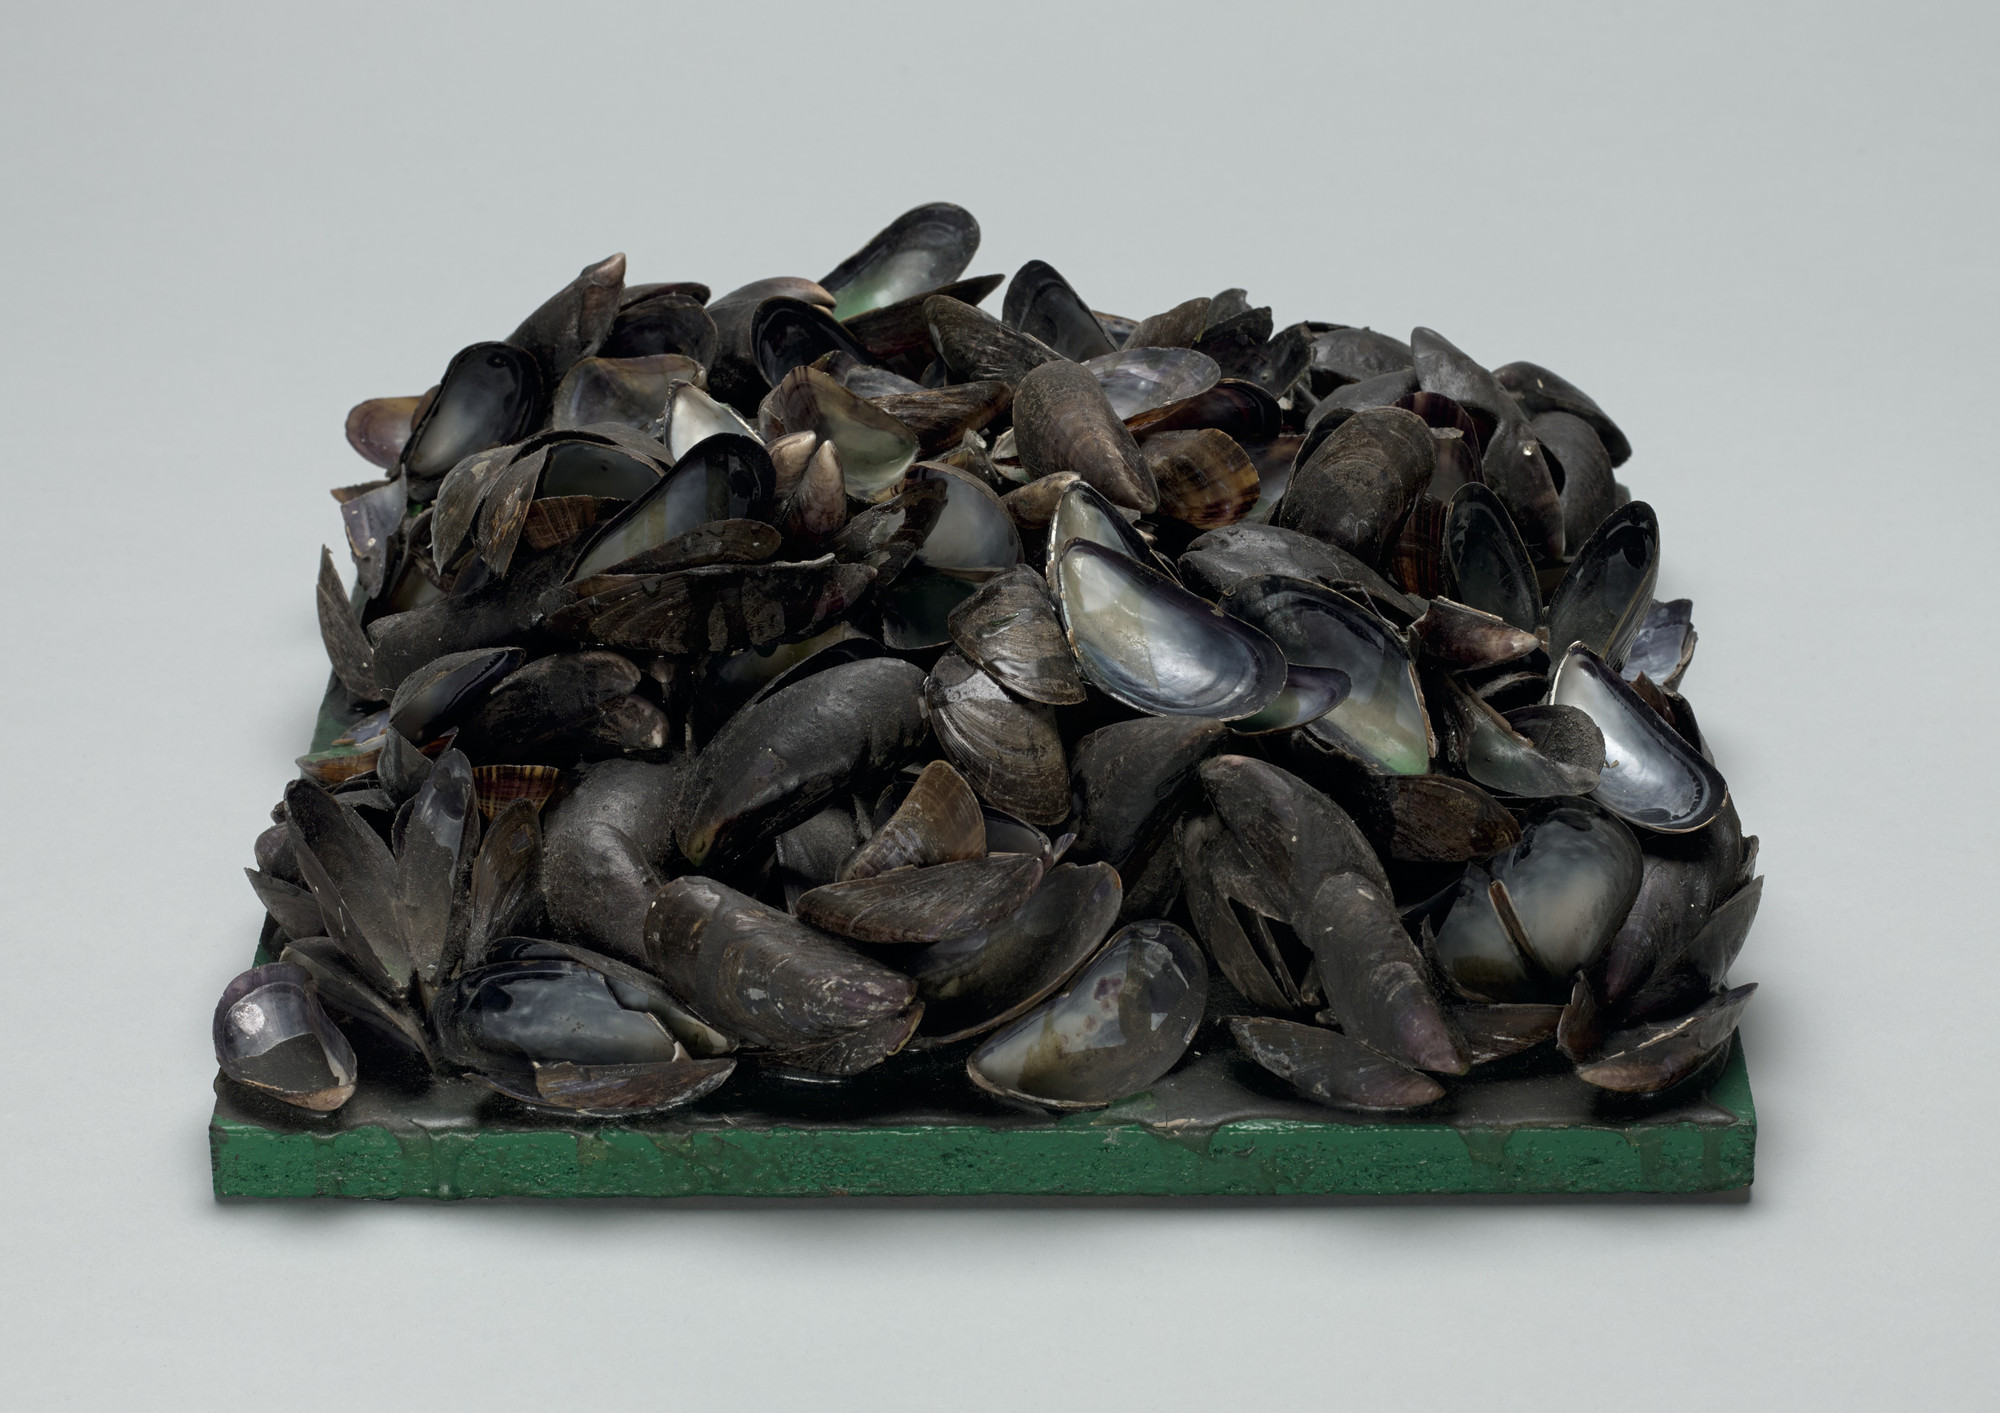 Marcel Broodthaers. Panel of Mussels. 1968